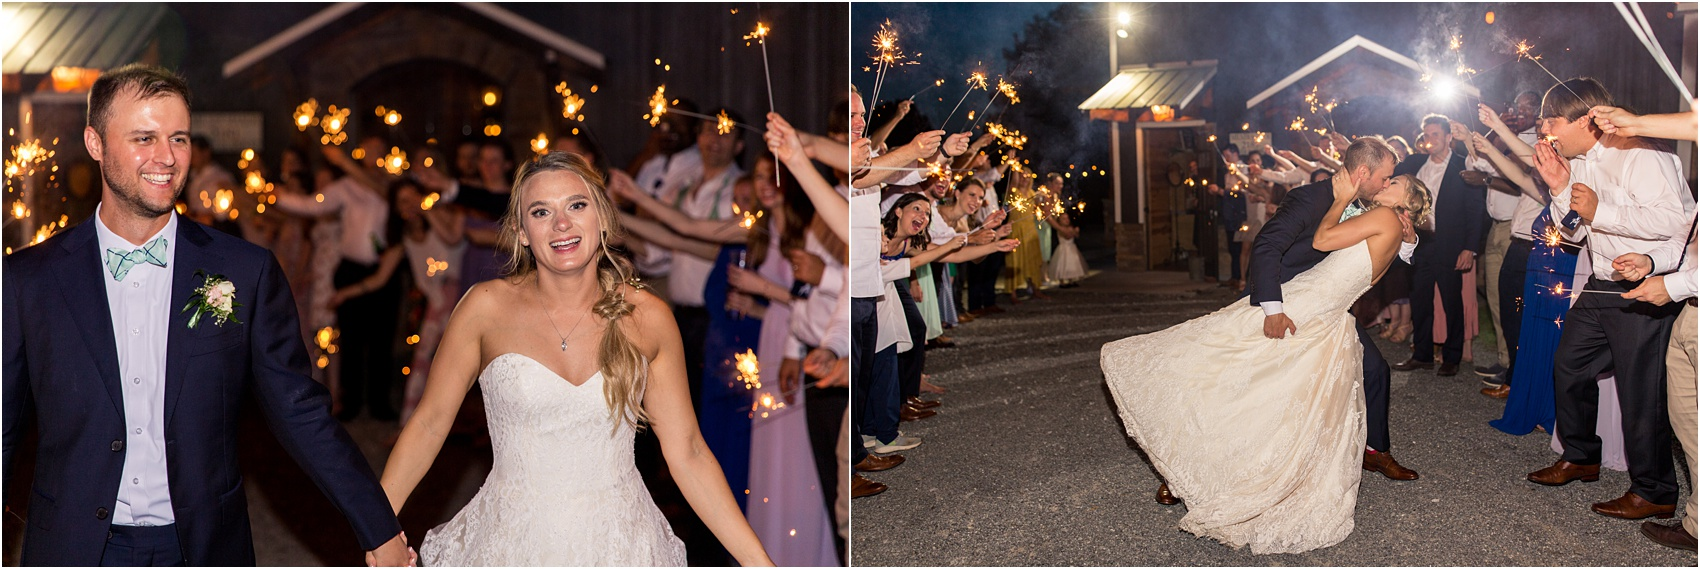 Savannah Eve Photography LLC- Wandolowski-Boyer Wedding-Blog-77.jpg